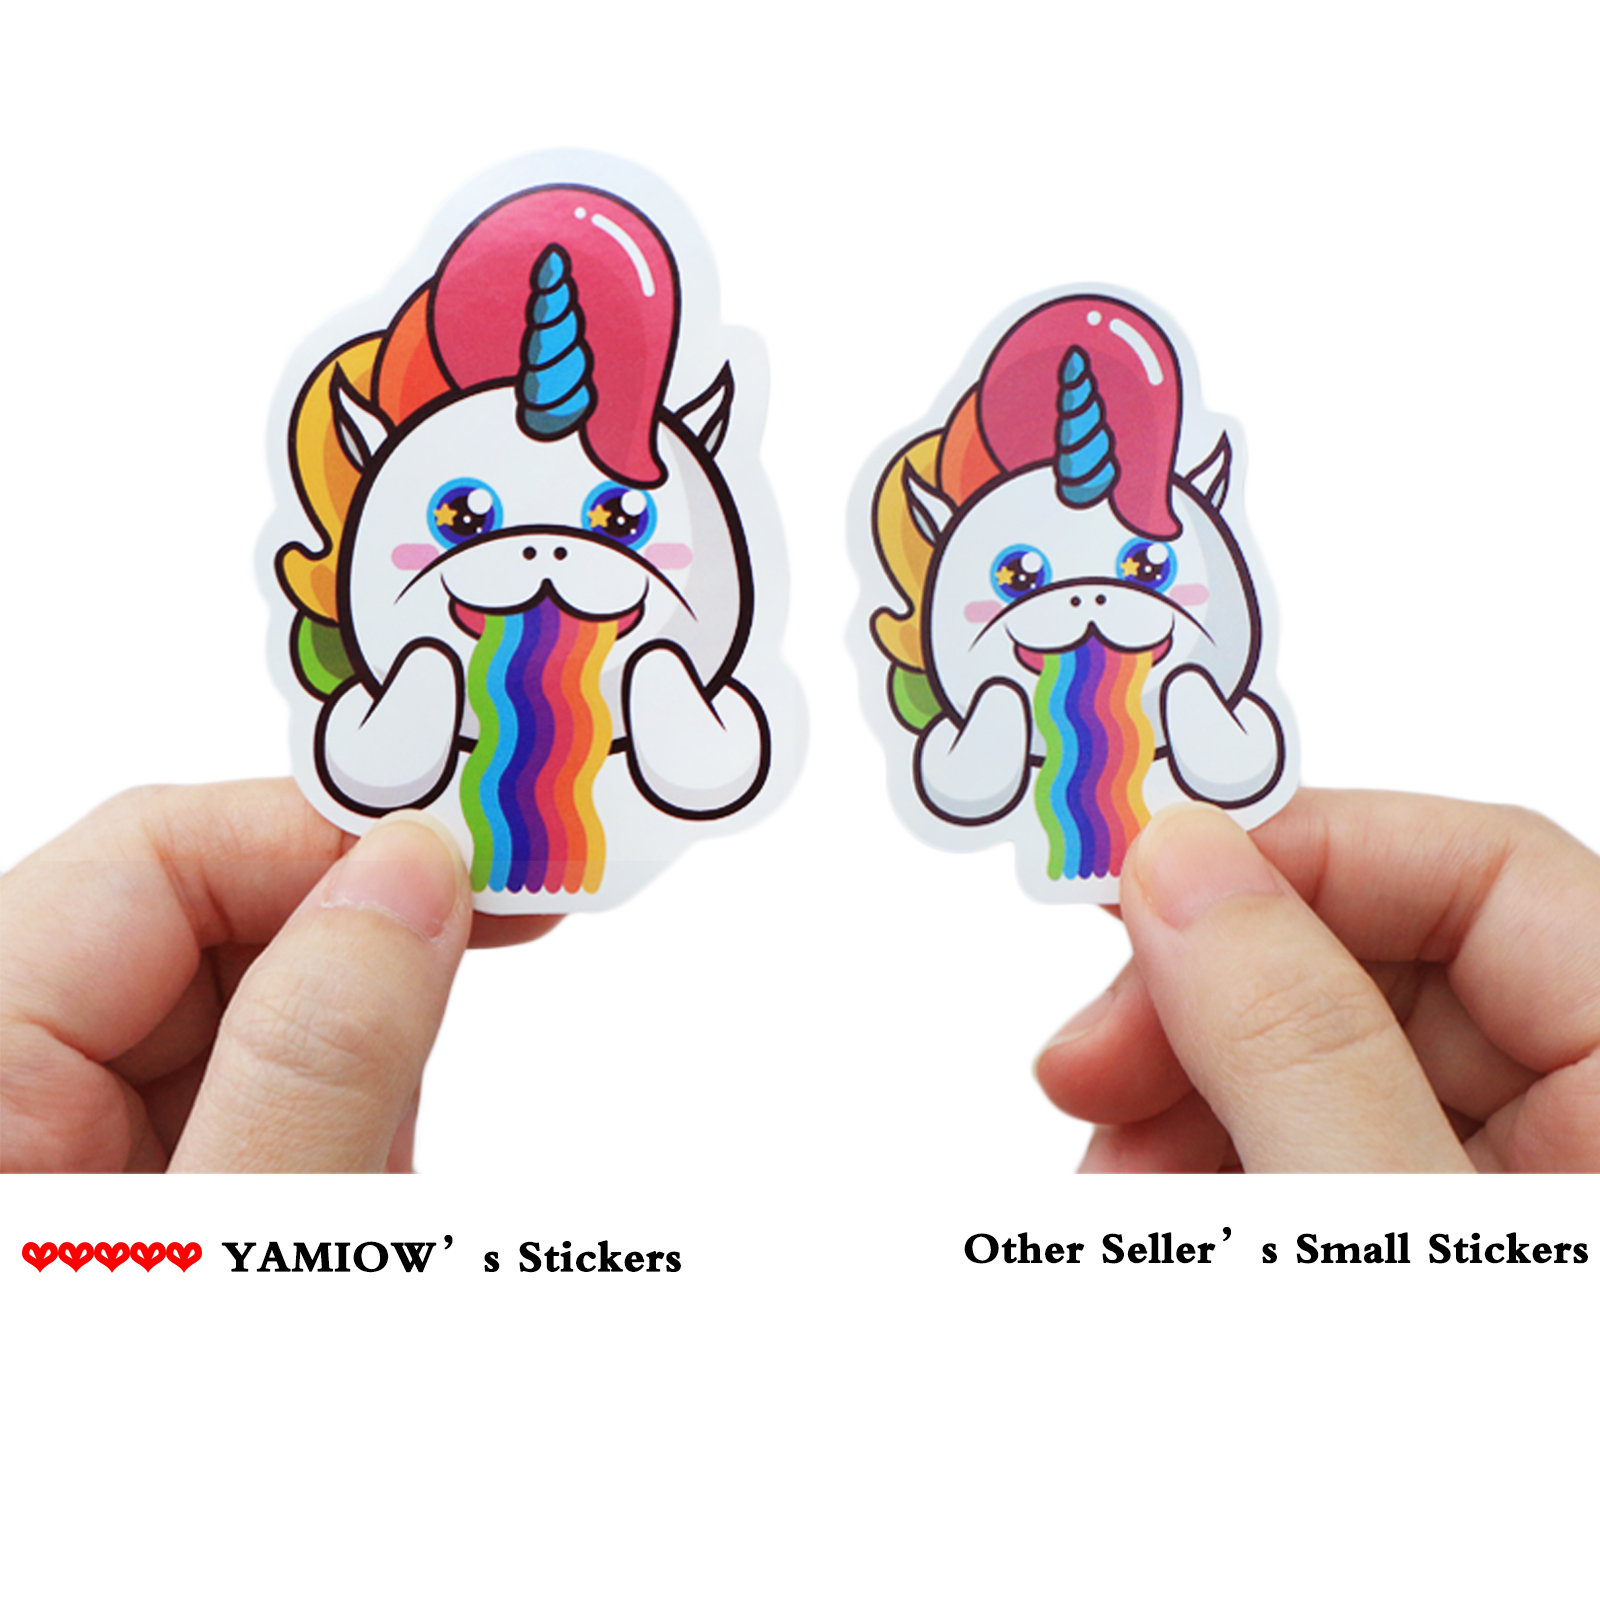 Купить с кэшбэком 104/52 Pcs VSCO Girl Unicorn Stickers Cute Funny Cartoon for Stickers for Water Bottle Laptop Luggage Skateboard Bedroom Toy